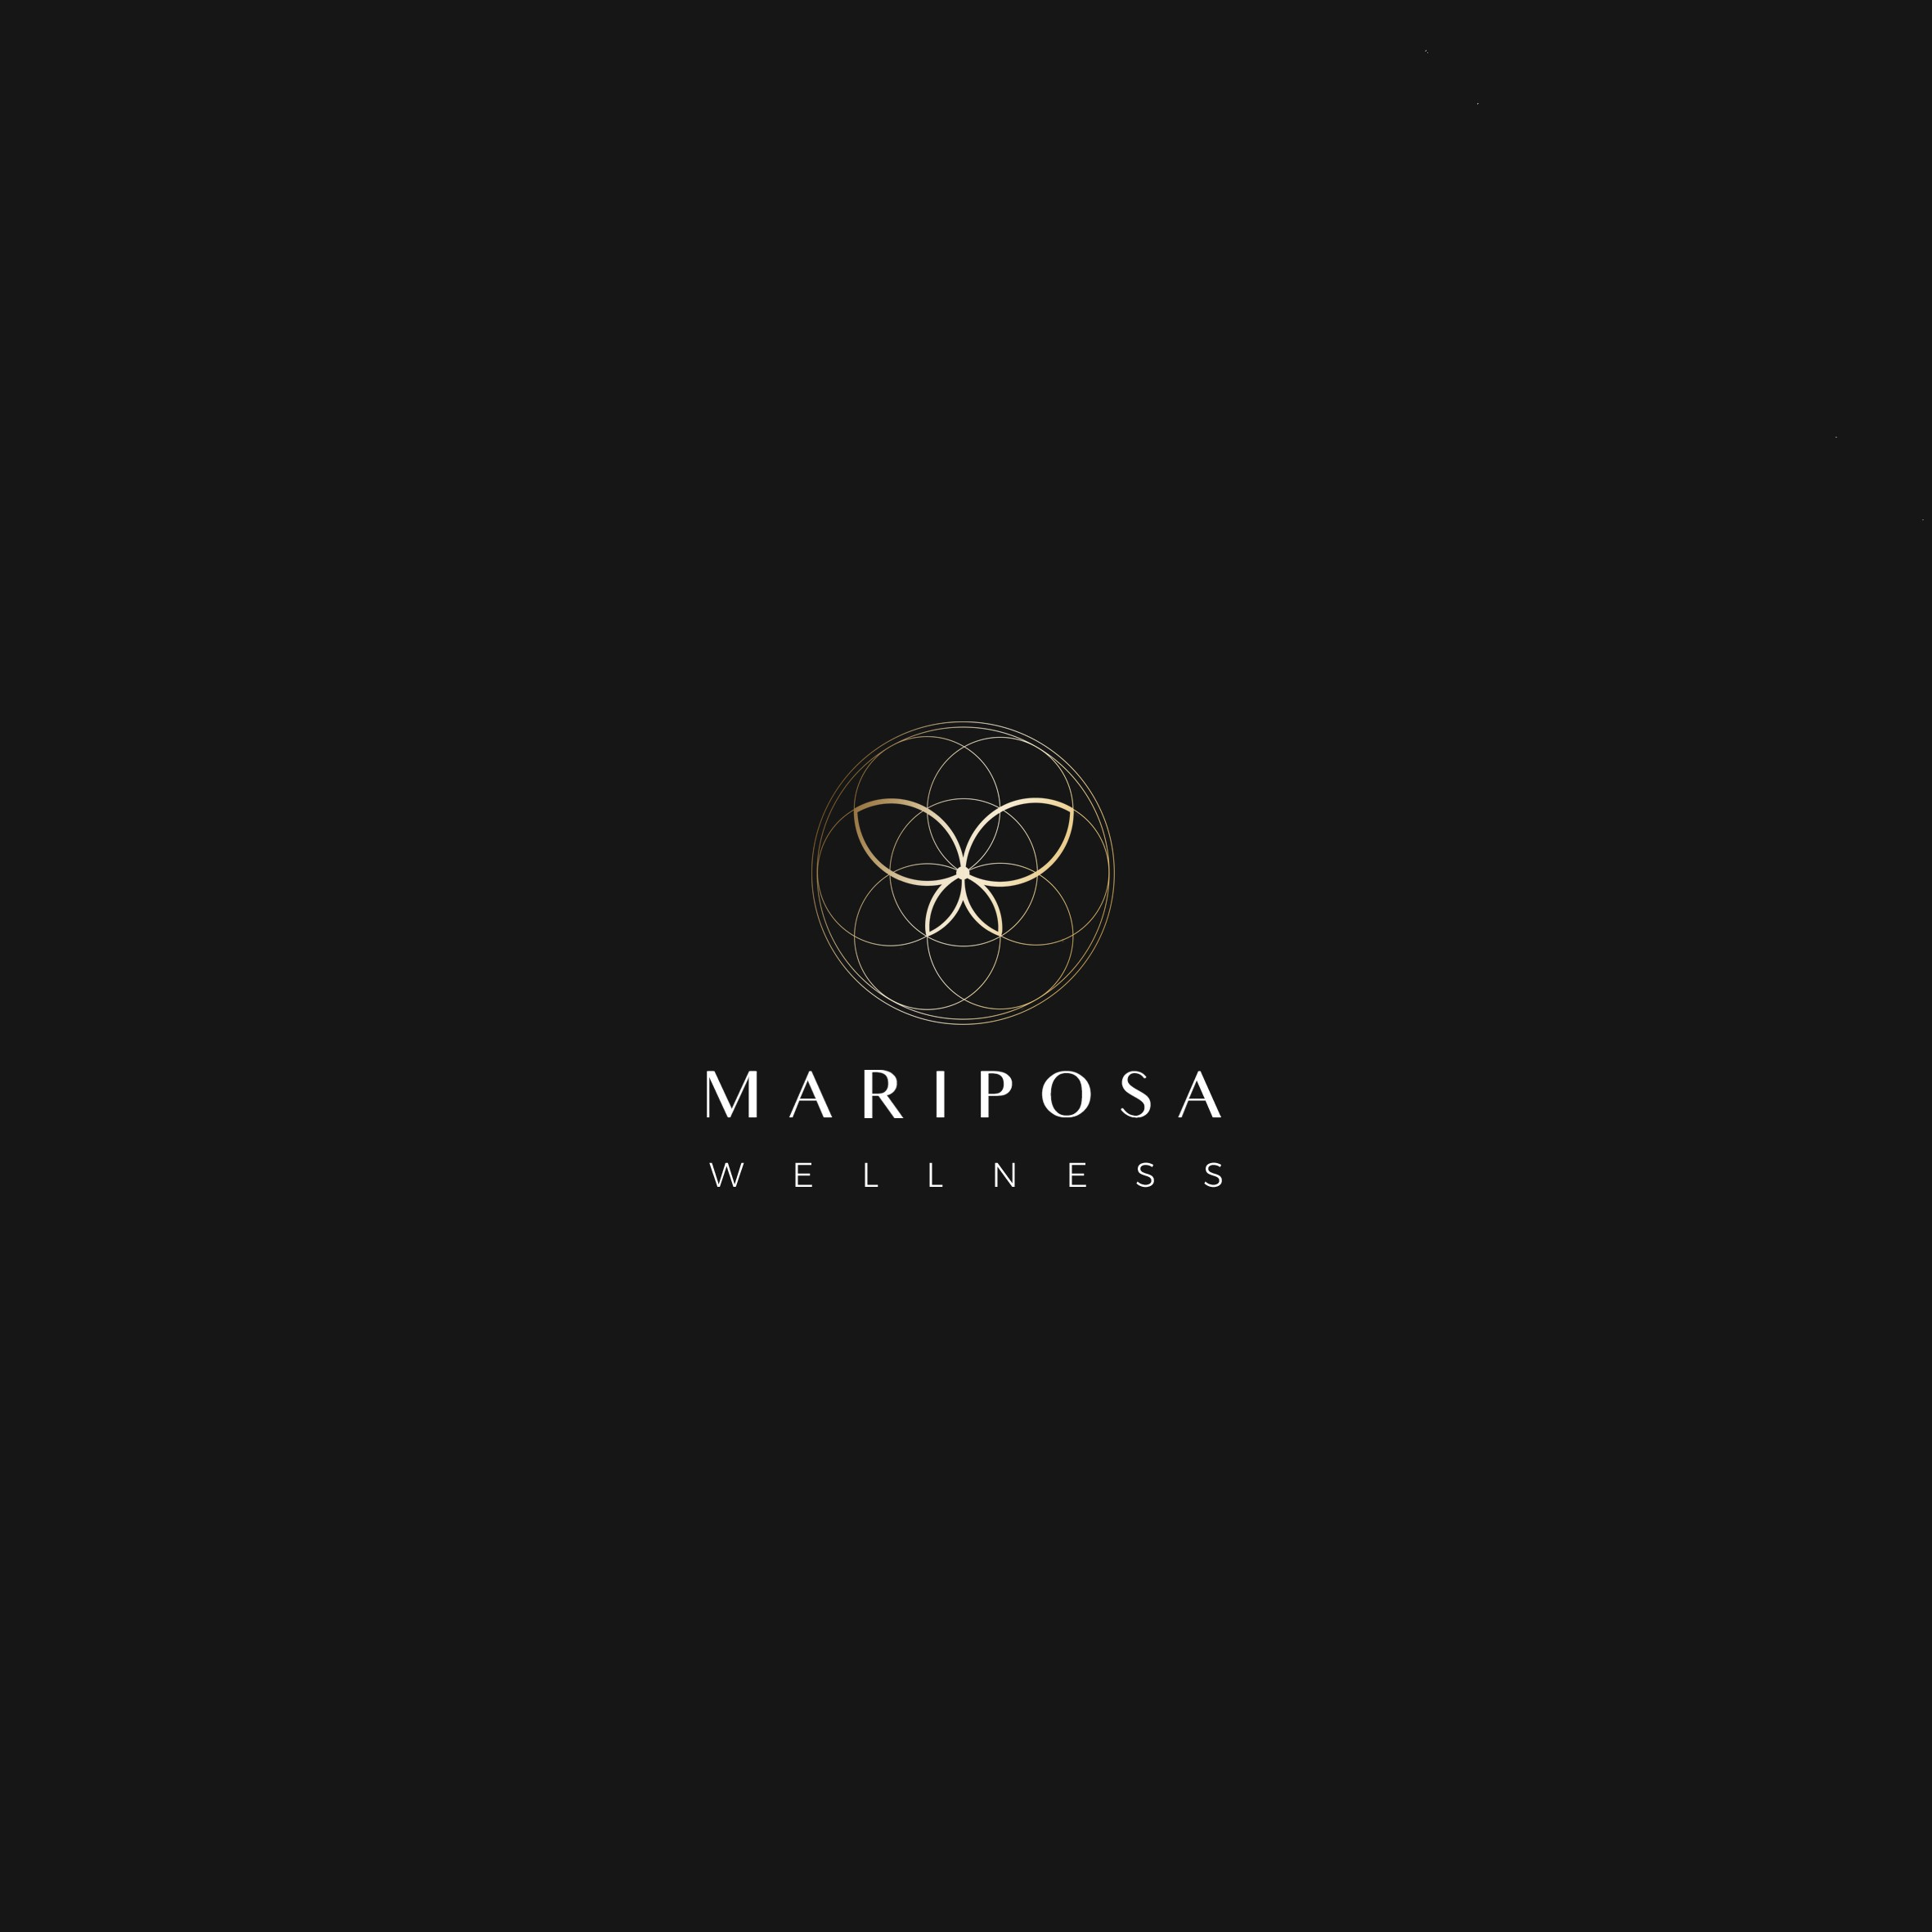 Looking For A Spiritual/Conscious/Natural Theme for Mariposa